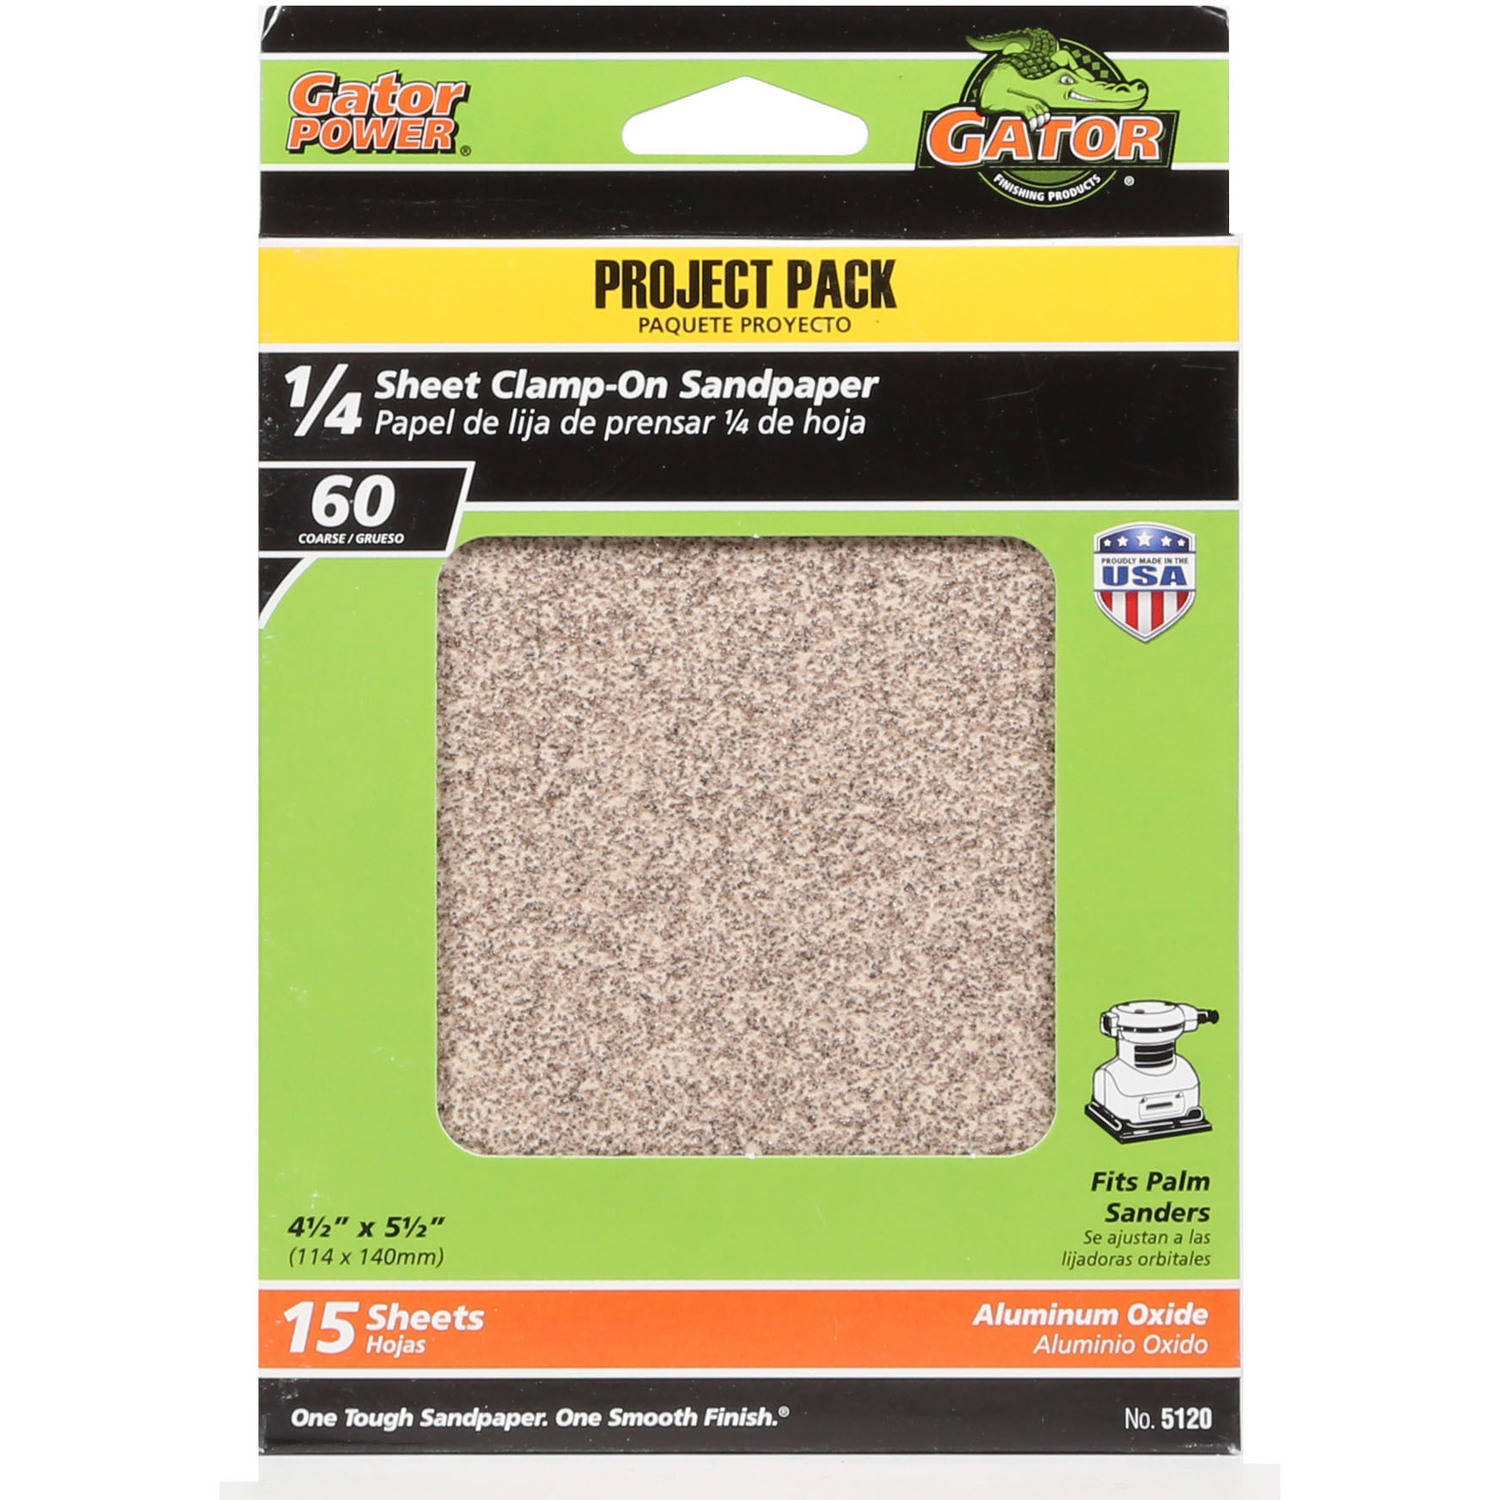 "Gator Grit 4.5"" x 5.5"" 1/4 Sheet Clamp-On Sandpaper, 60G, 15pk"